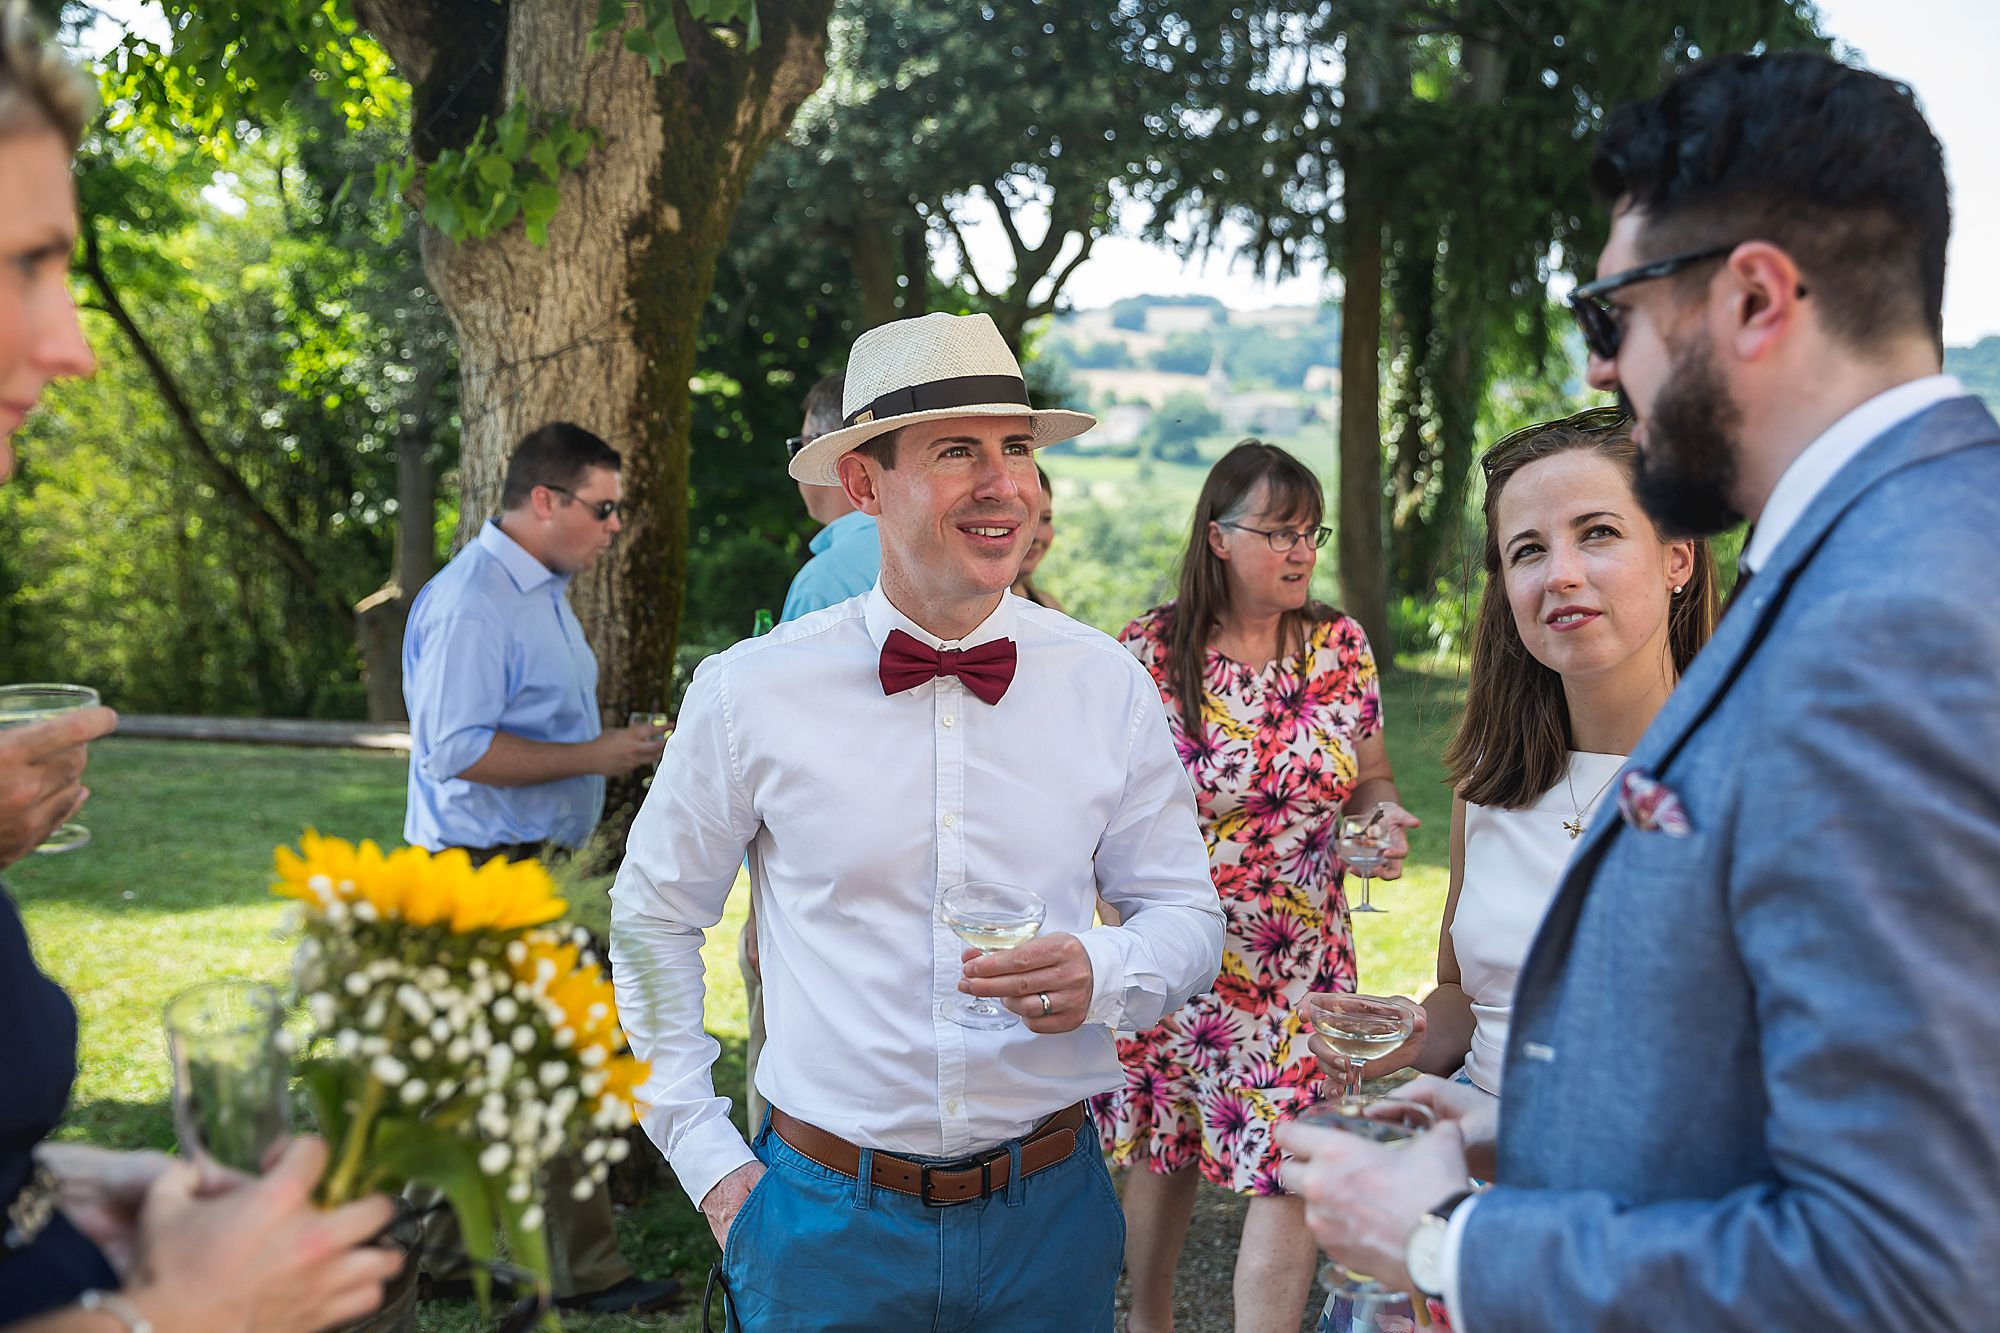 guy in bow tie and hat